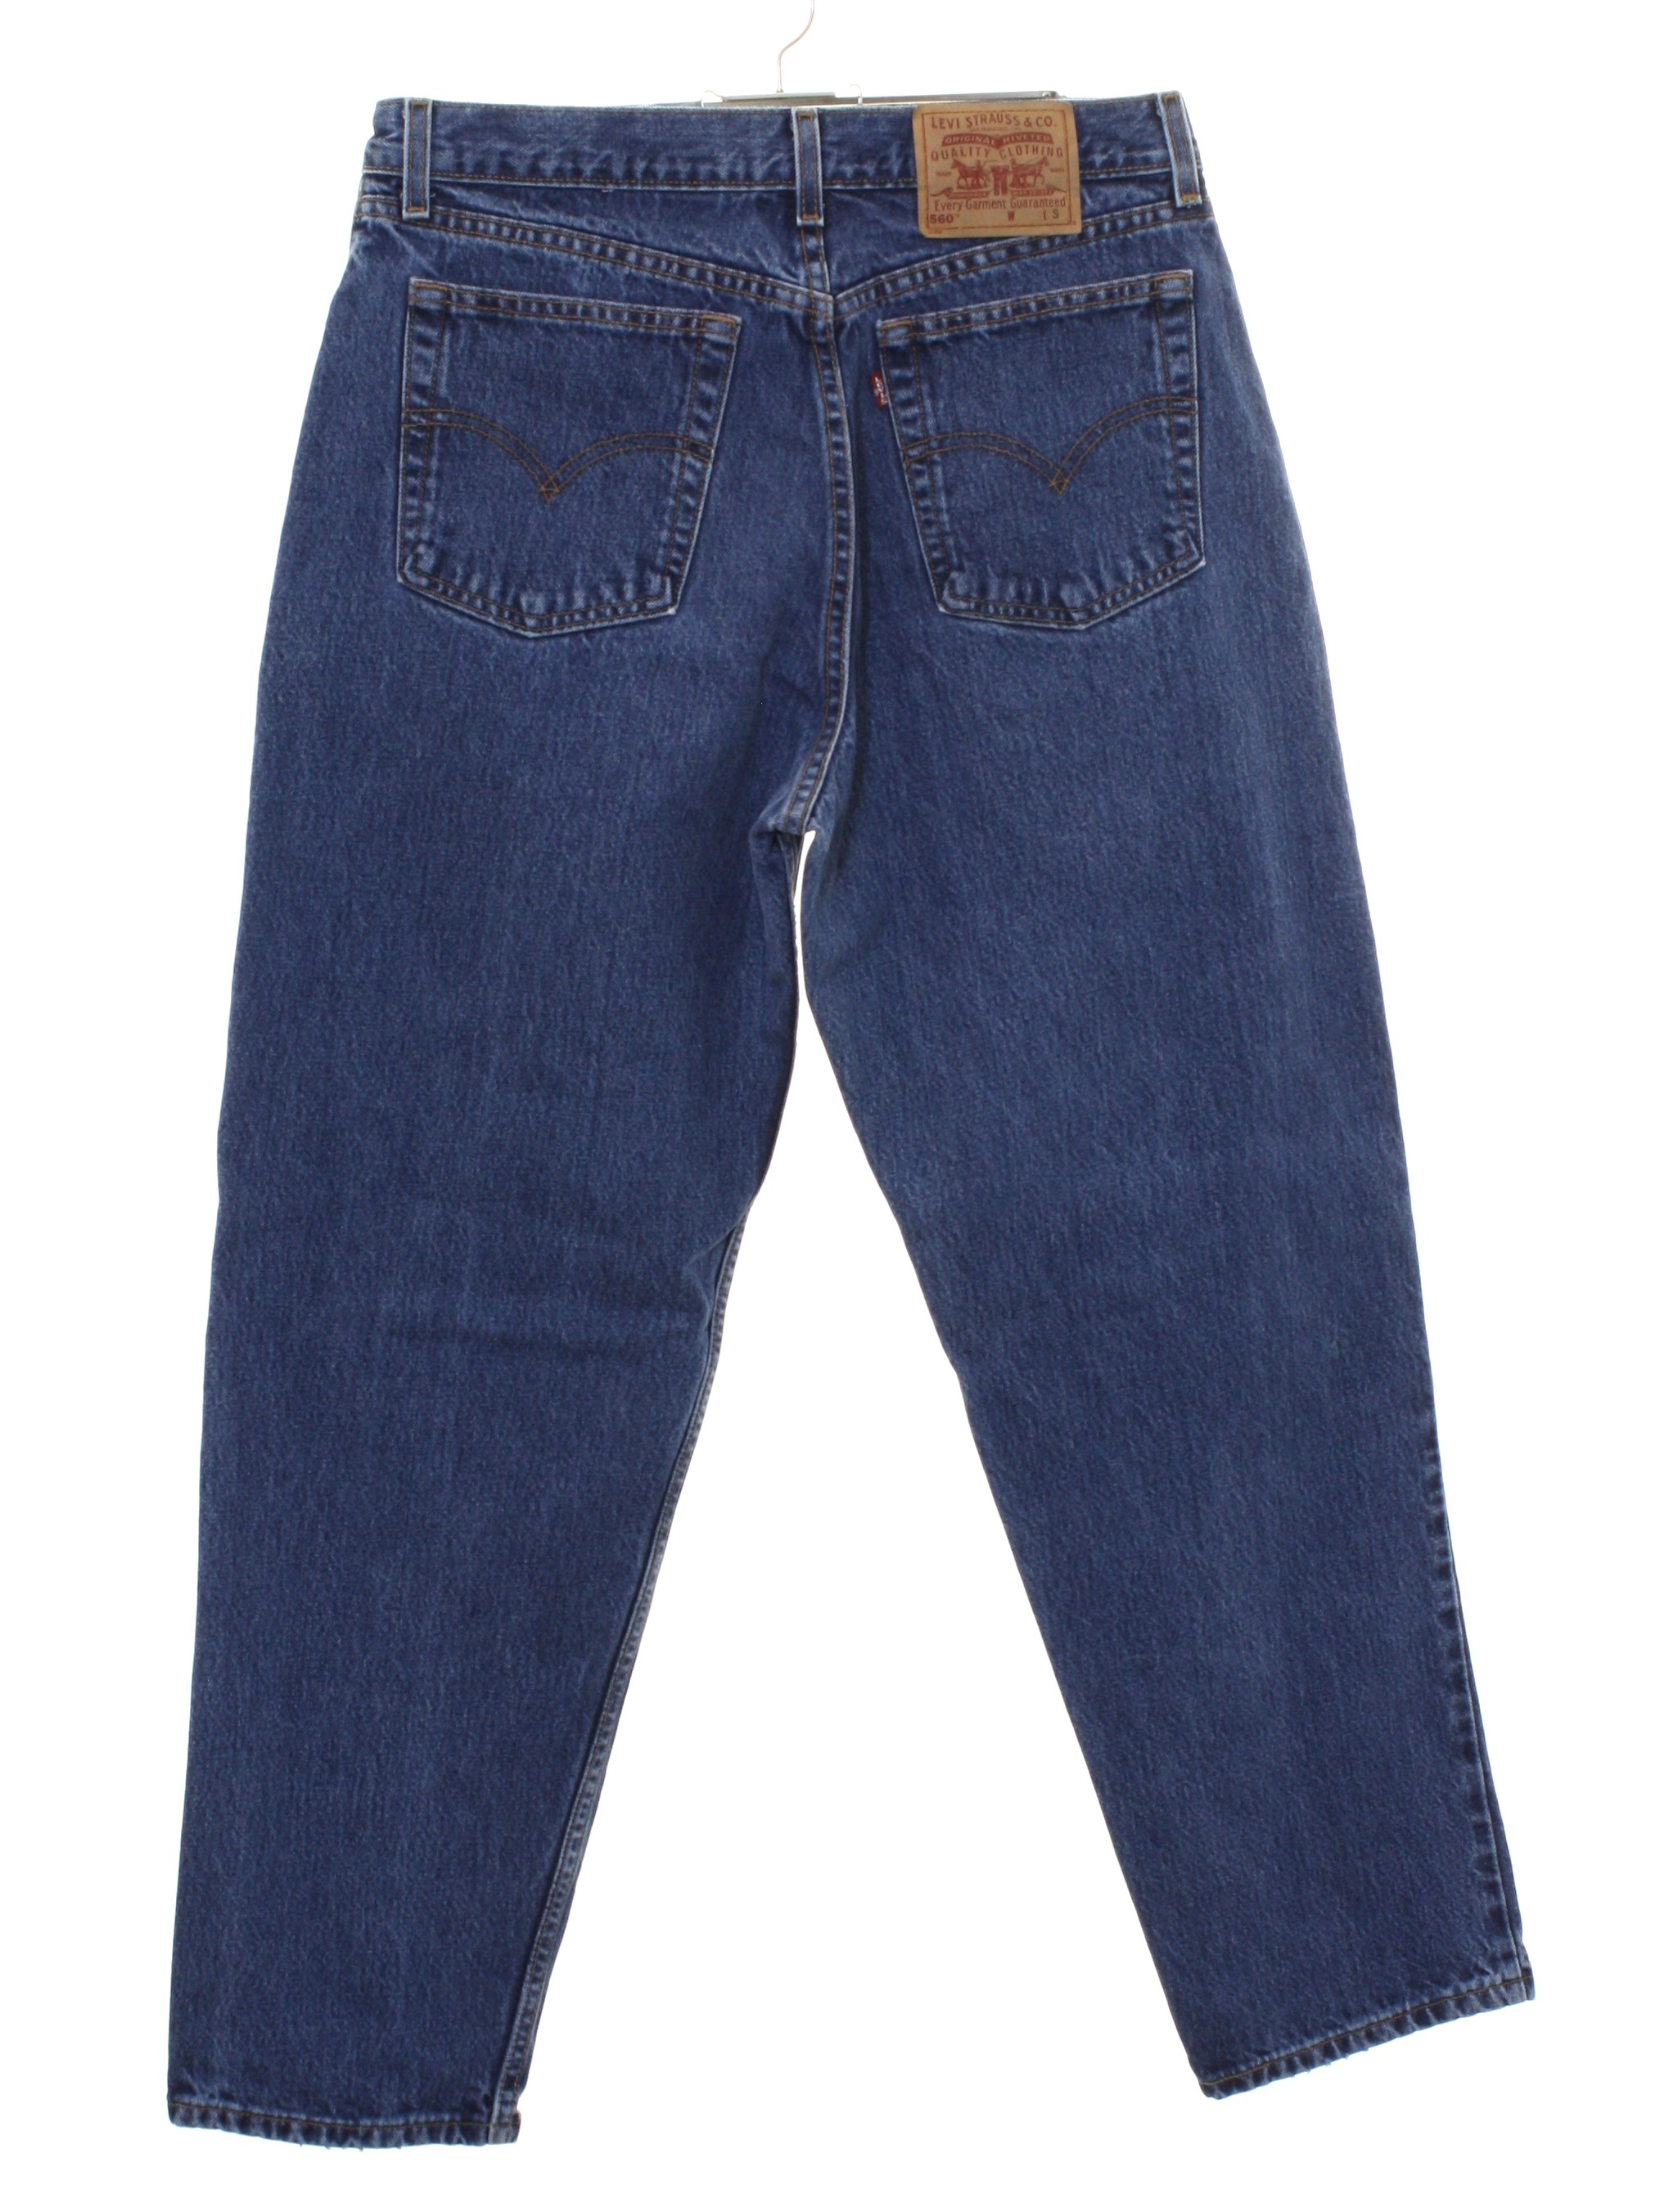 Vintage Levis 560 Nineties Pants 90s Levis 560 Womens Blue Cotton Denim Levis 560 Loose Fit Straight Leg Denim Jeans High Waisted Pants With Zipper Fly Closure With Button Five Pocket Style Our range of women's jeans covers every fit, cut and style for every kind of wardrobe, from our high waisted jeans to relaxed wide leg jeans. 1990 s levis 560 womens levis 560 loose fit straight leg denim highwaisted mom jeans pants